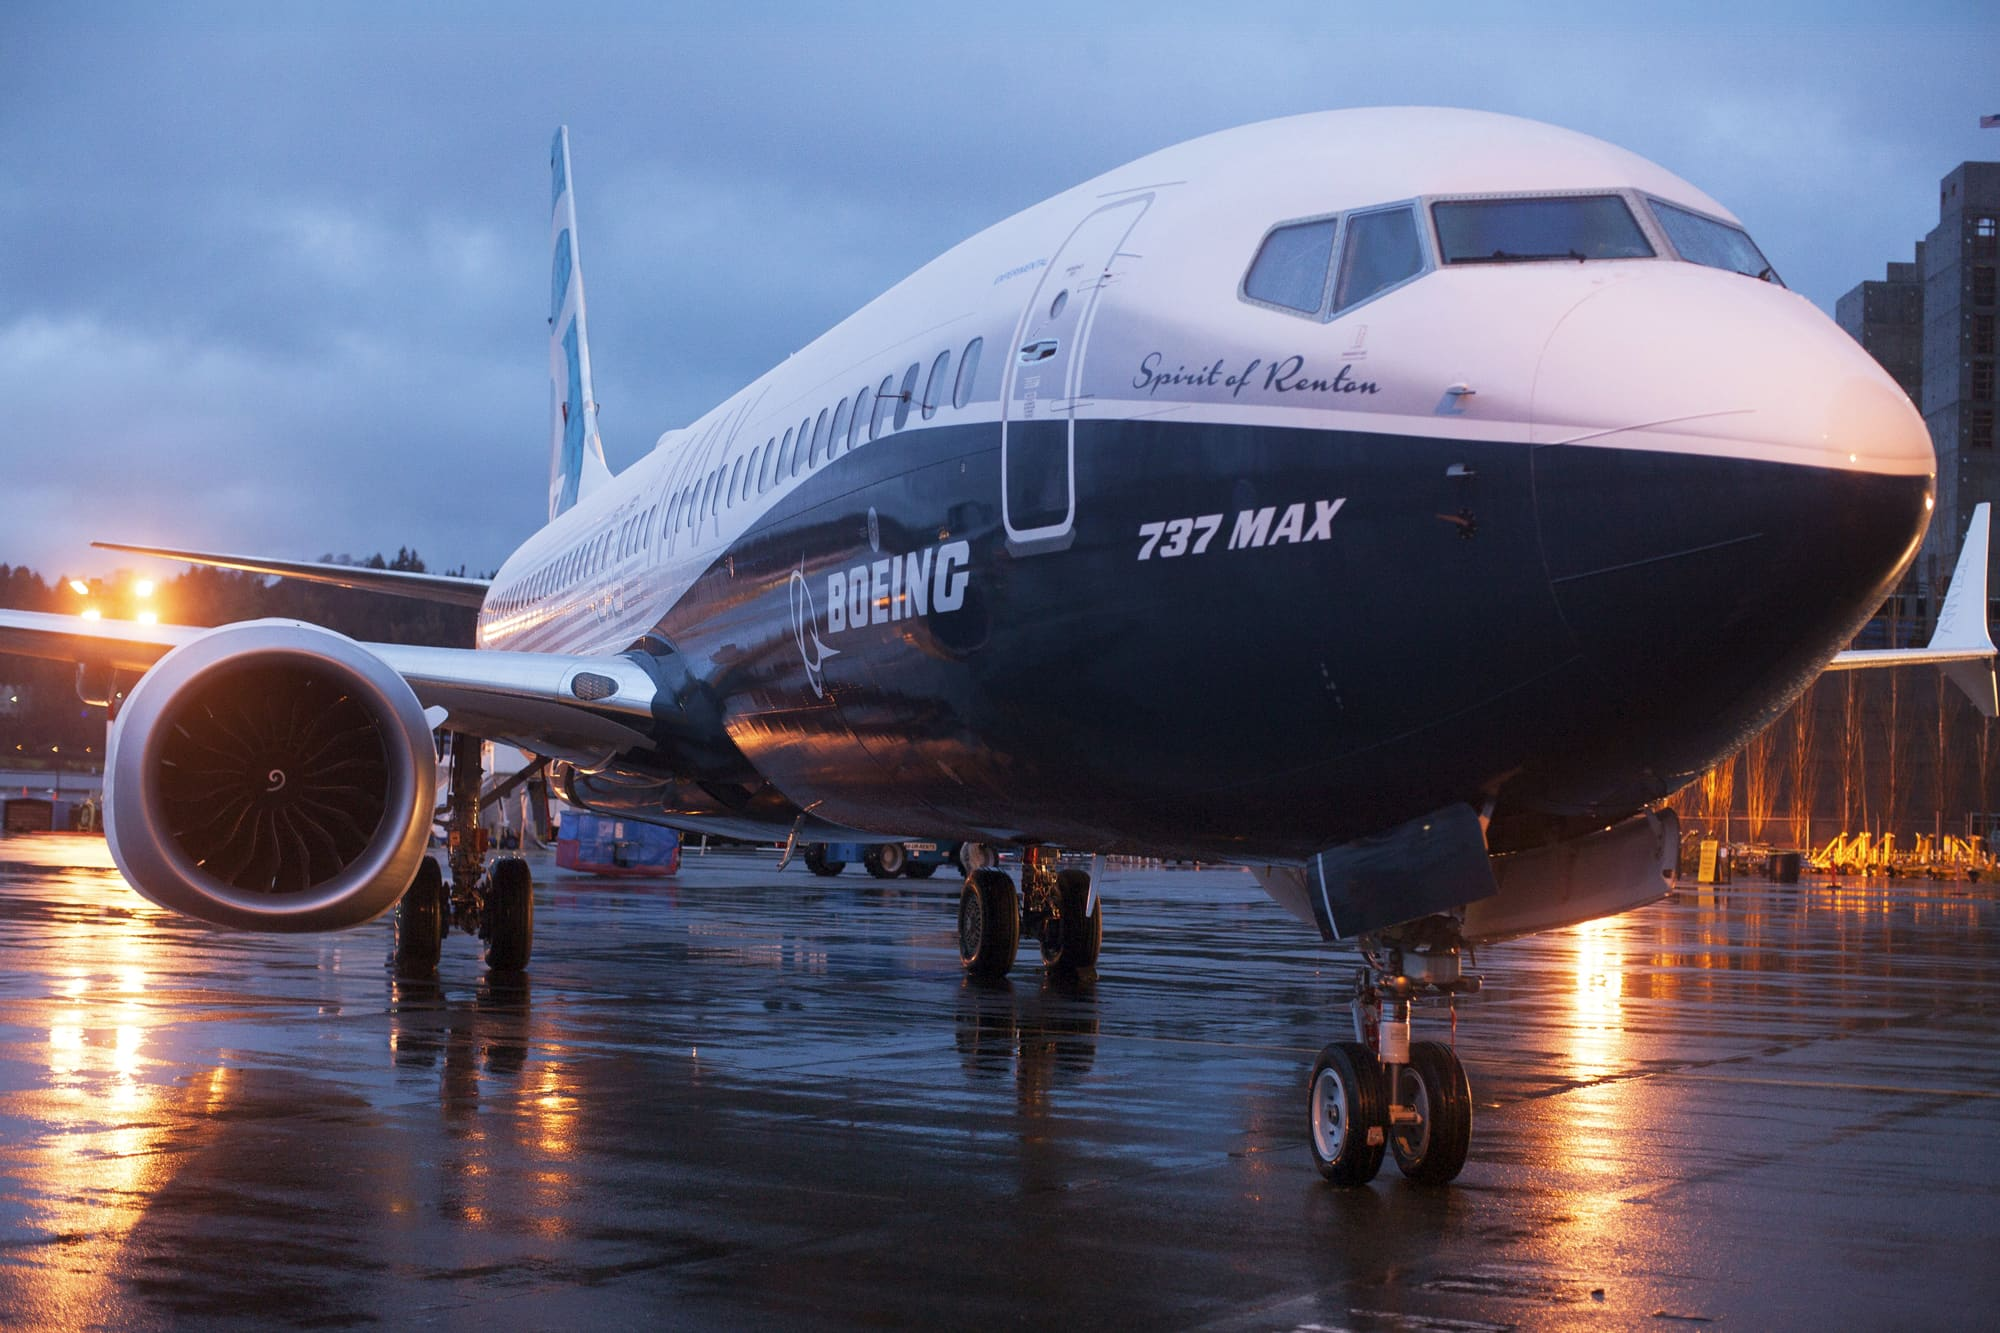 Consumer confidence in 737 Max jets 'going to take a while to come back,' says Delta CEO Ed Bastian